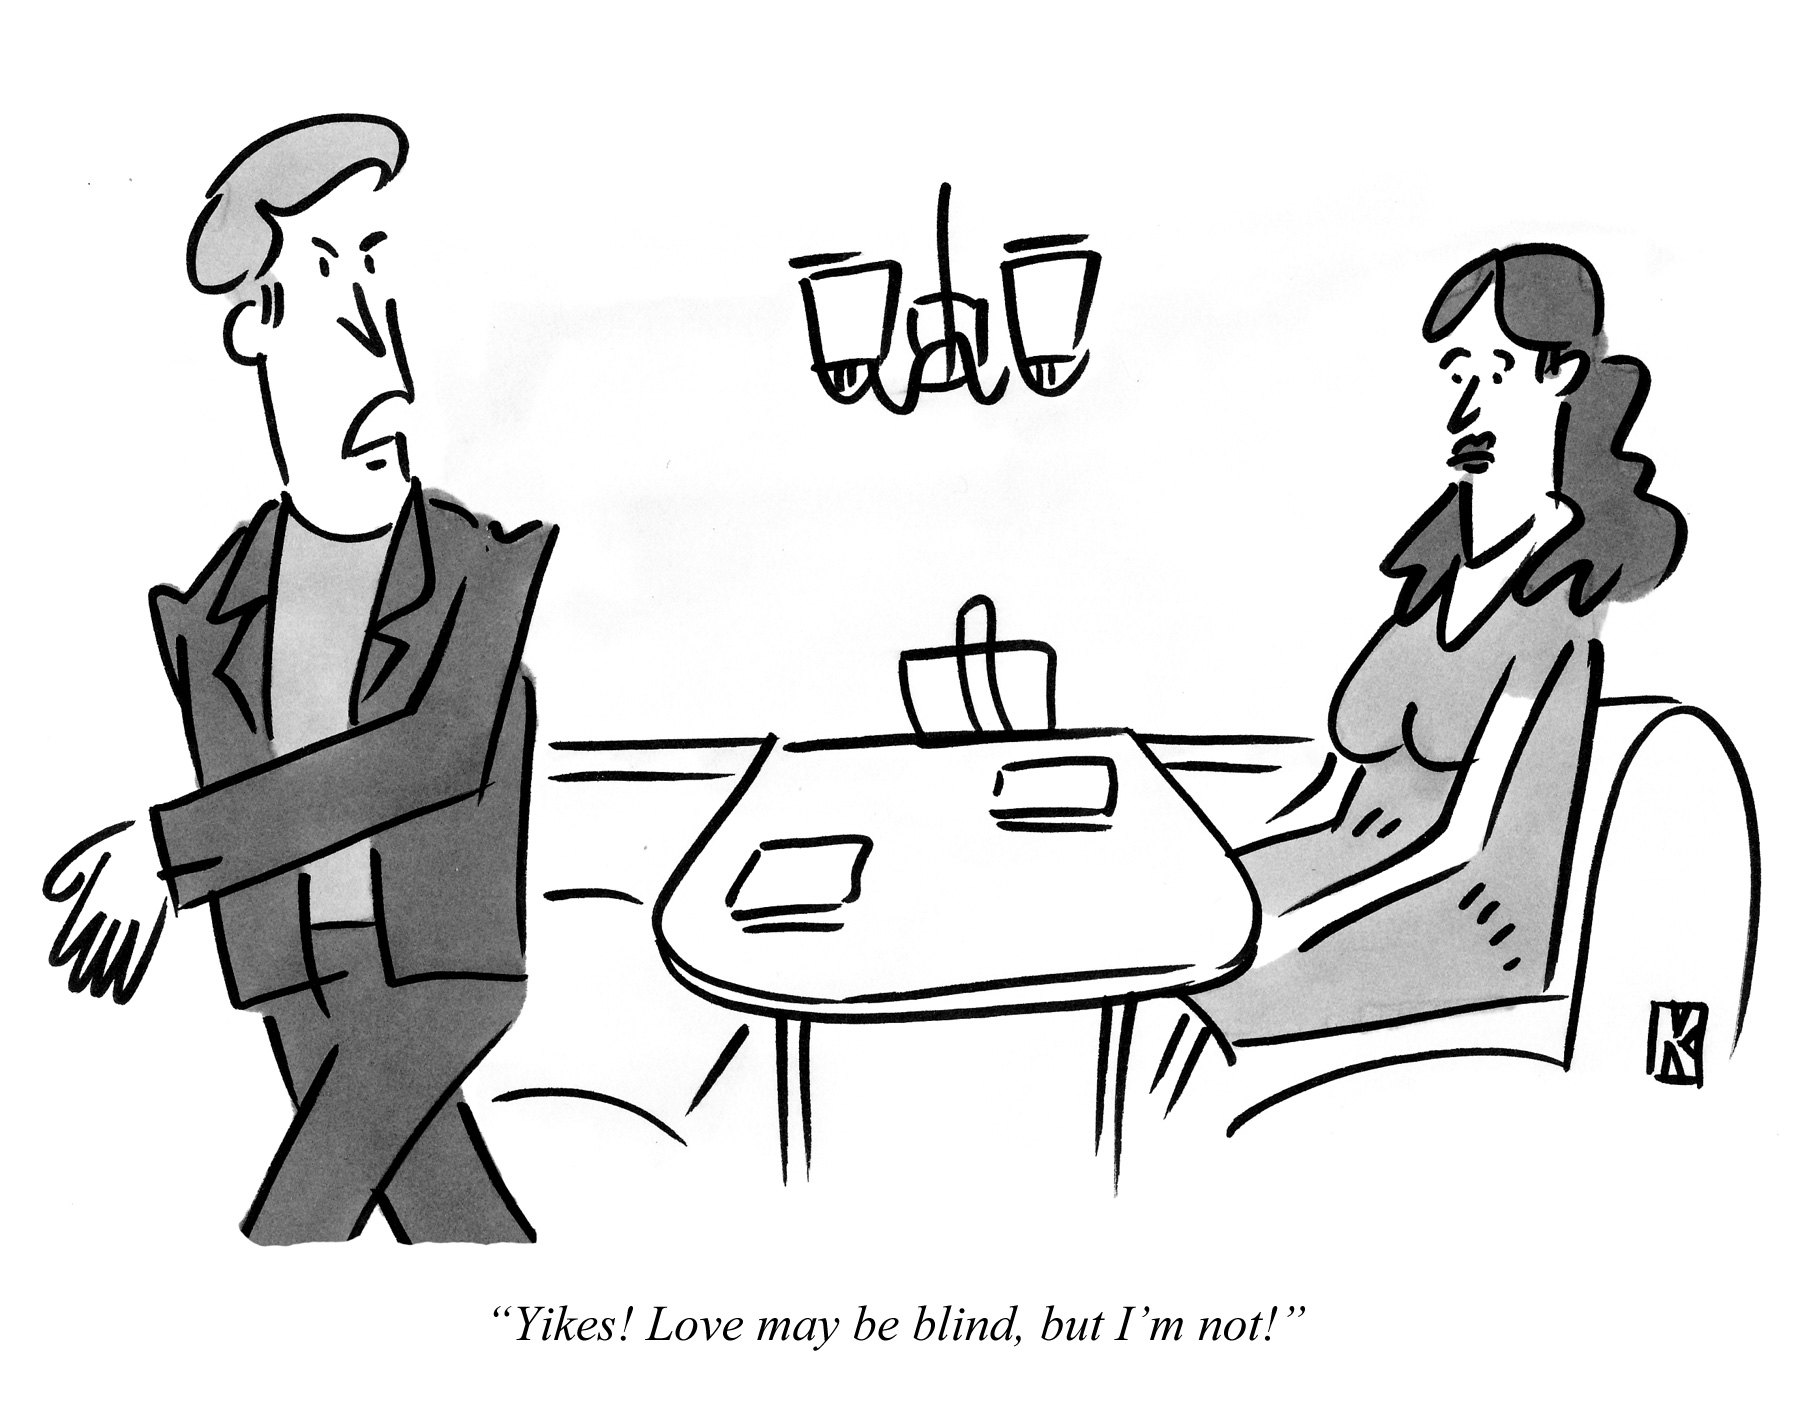 Yikes! Love may be blind, but I'm not!